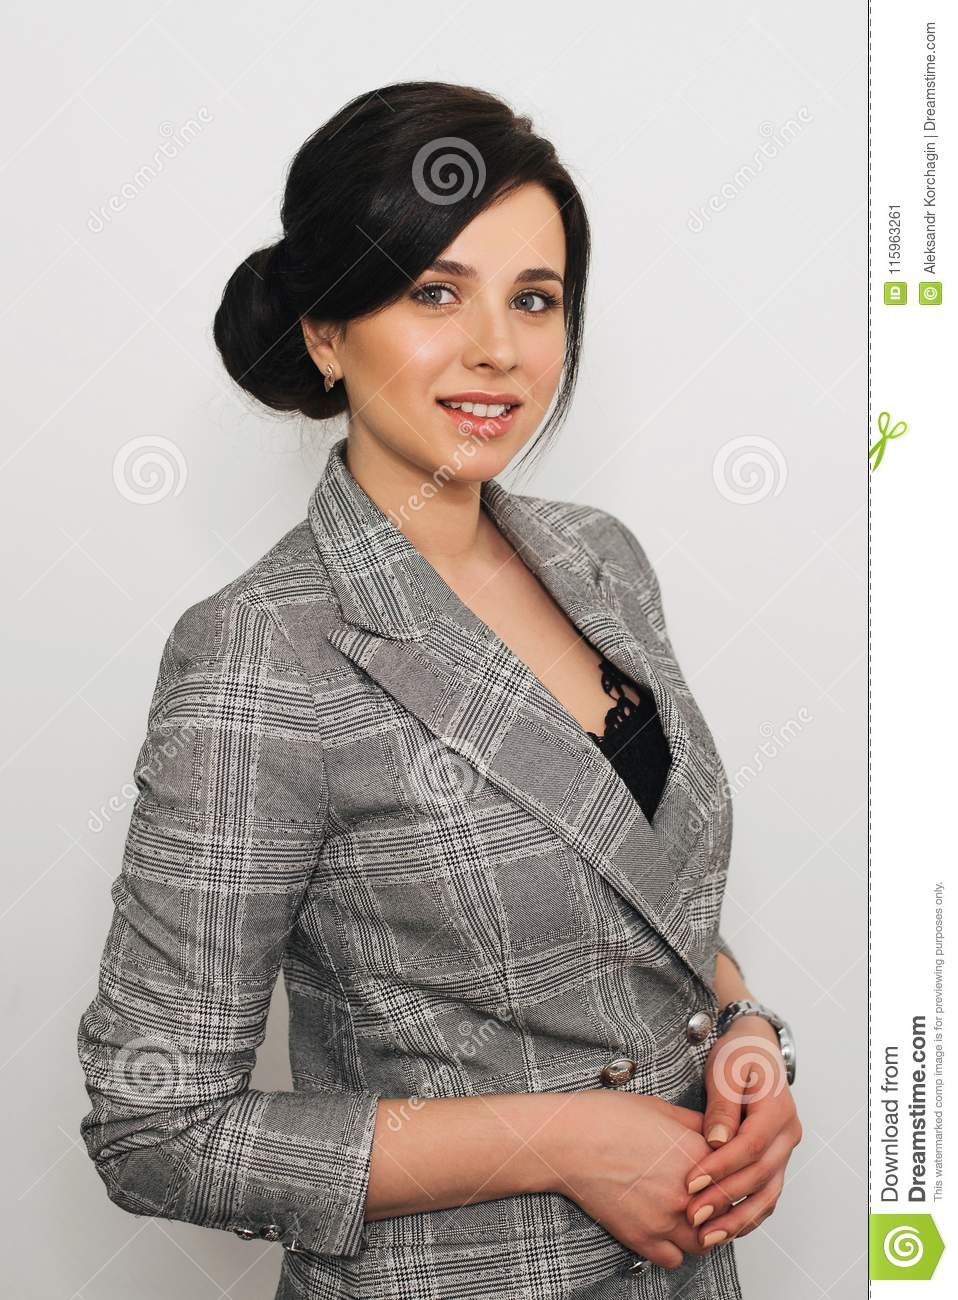 Secretary Girl Of Caucasian Appearance In Business Suit With Smile